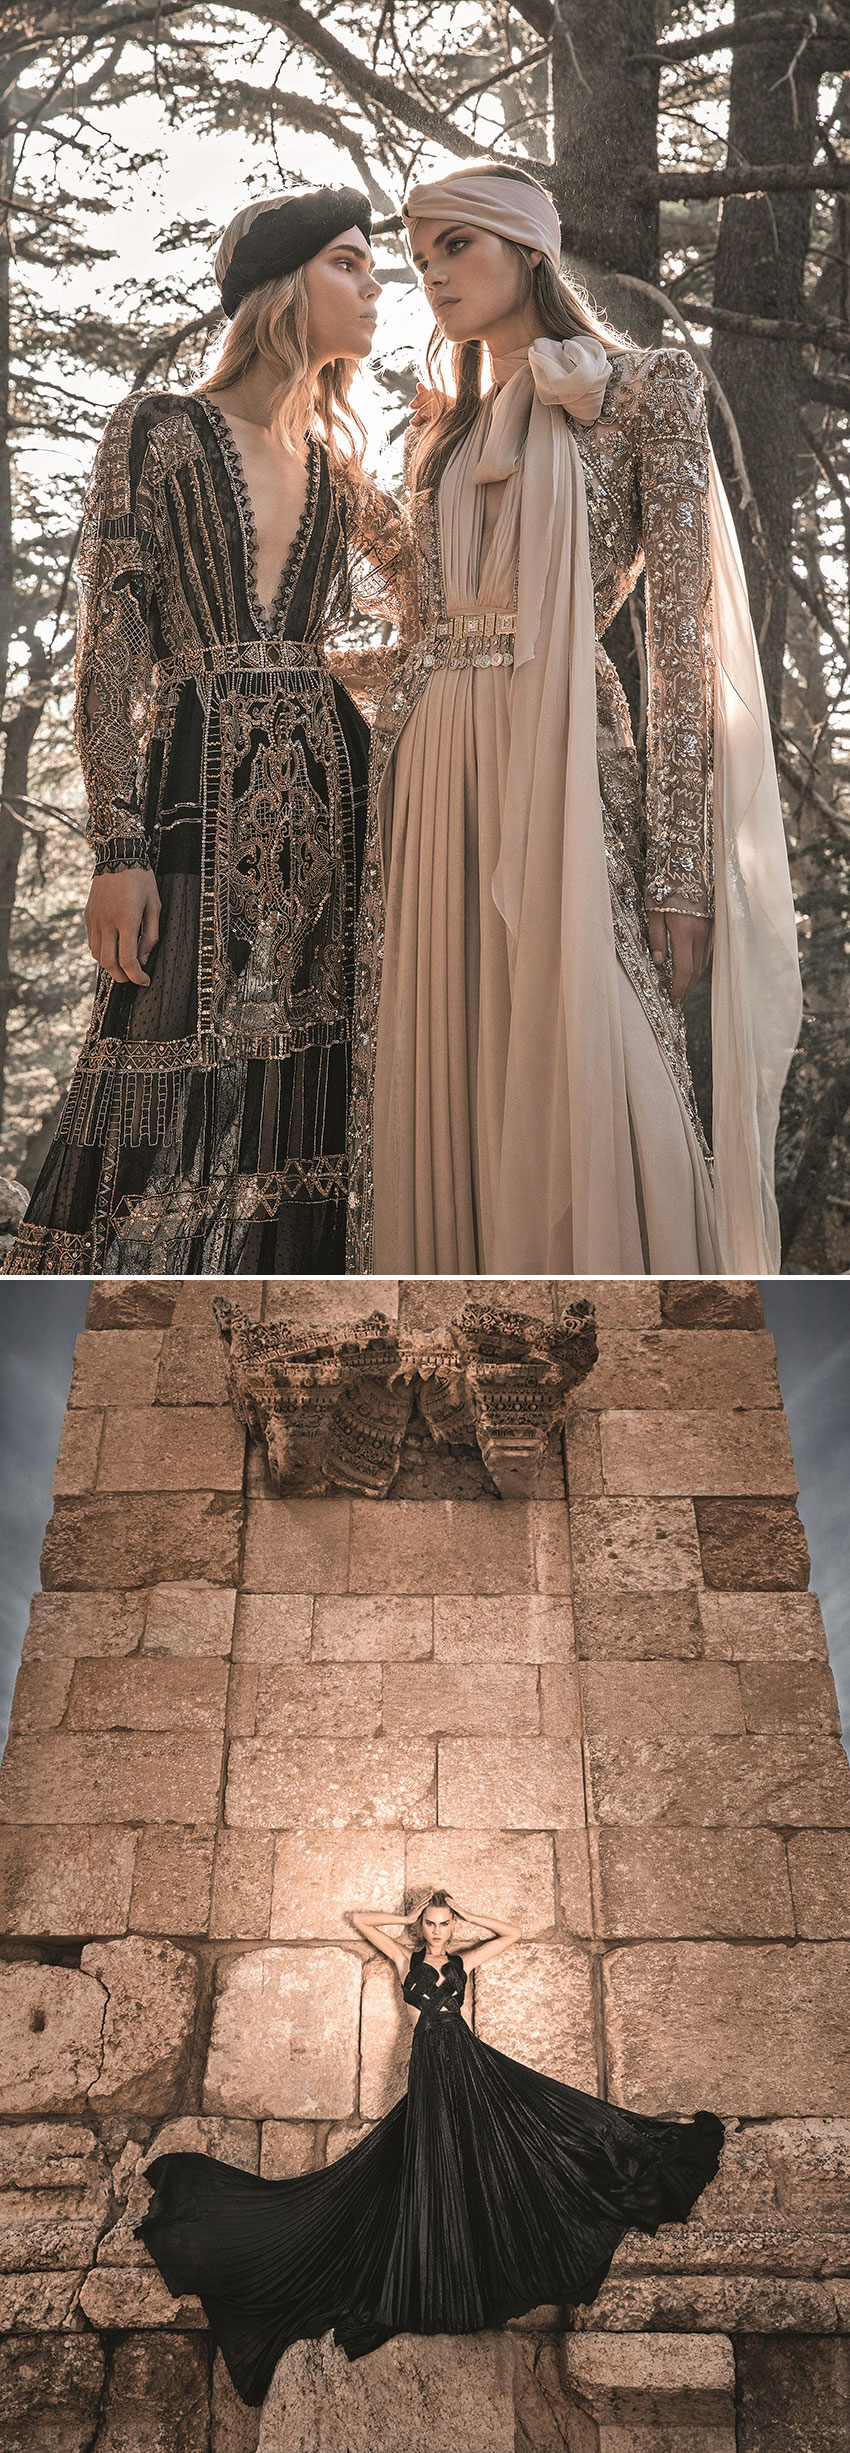 Models Sophie Rask and Line Brems wearing long dresses by Zuhair Murad from Fall 2019 Mirages et Oasis collection photographed at Barouk Natural Reserve featured in Perfect Wedding Magazine